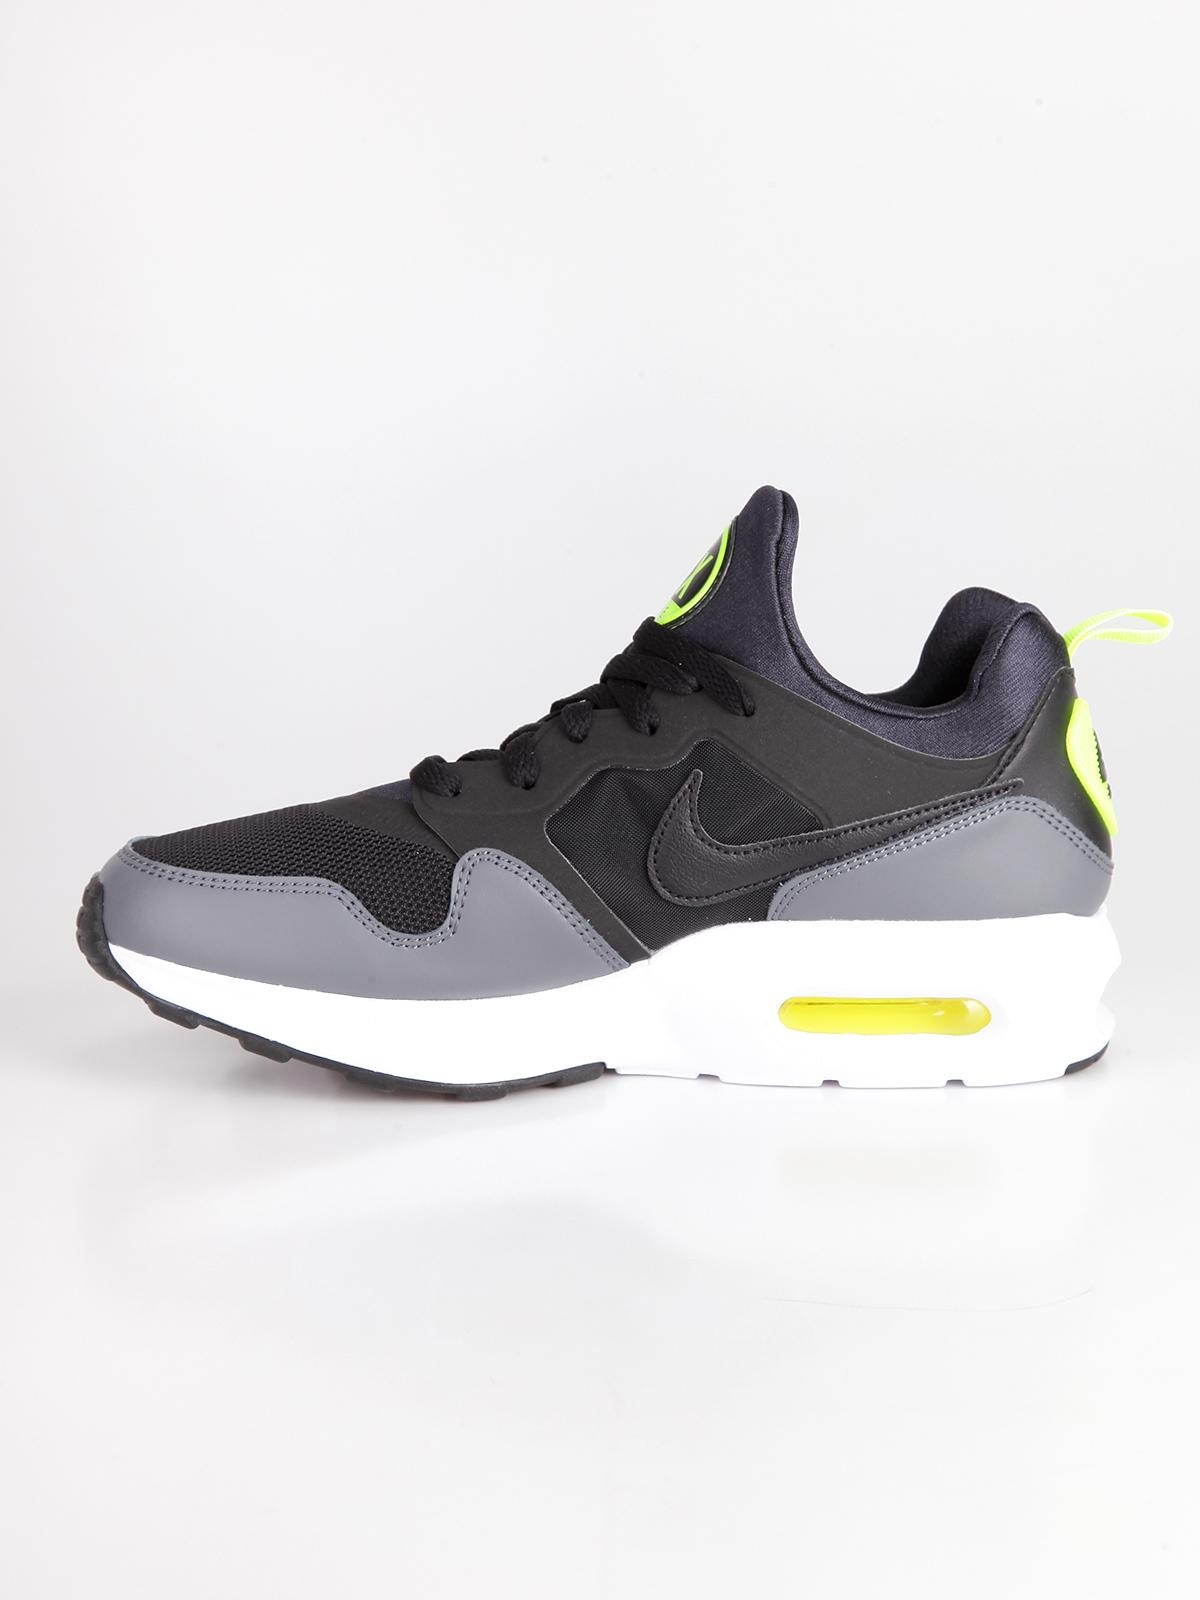 Sneakers air max prime nike | MecShopping